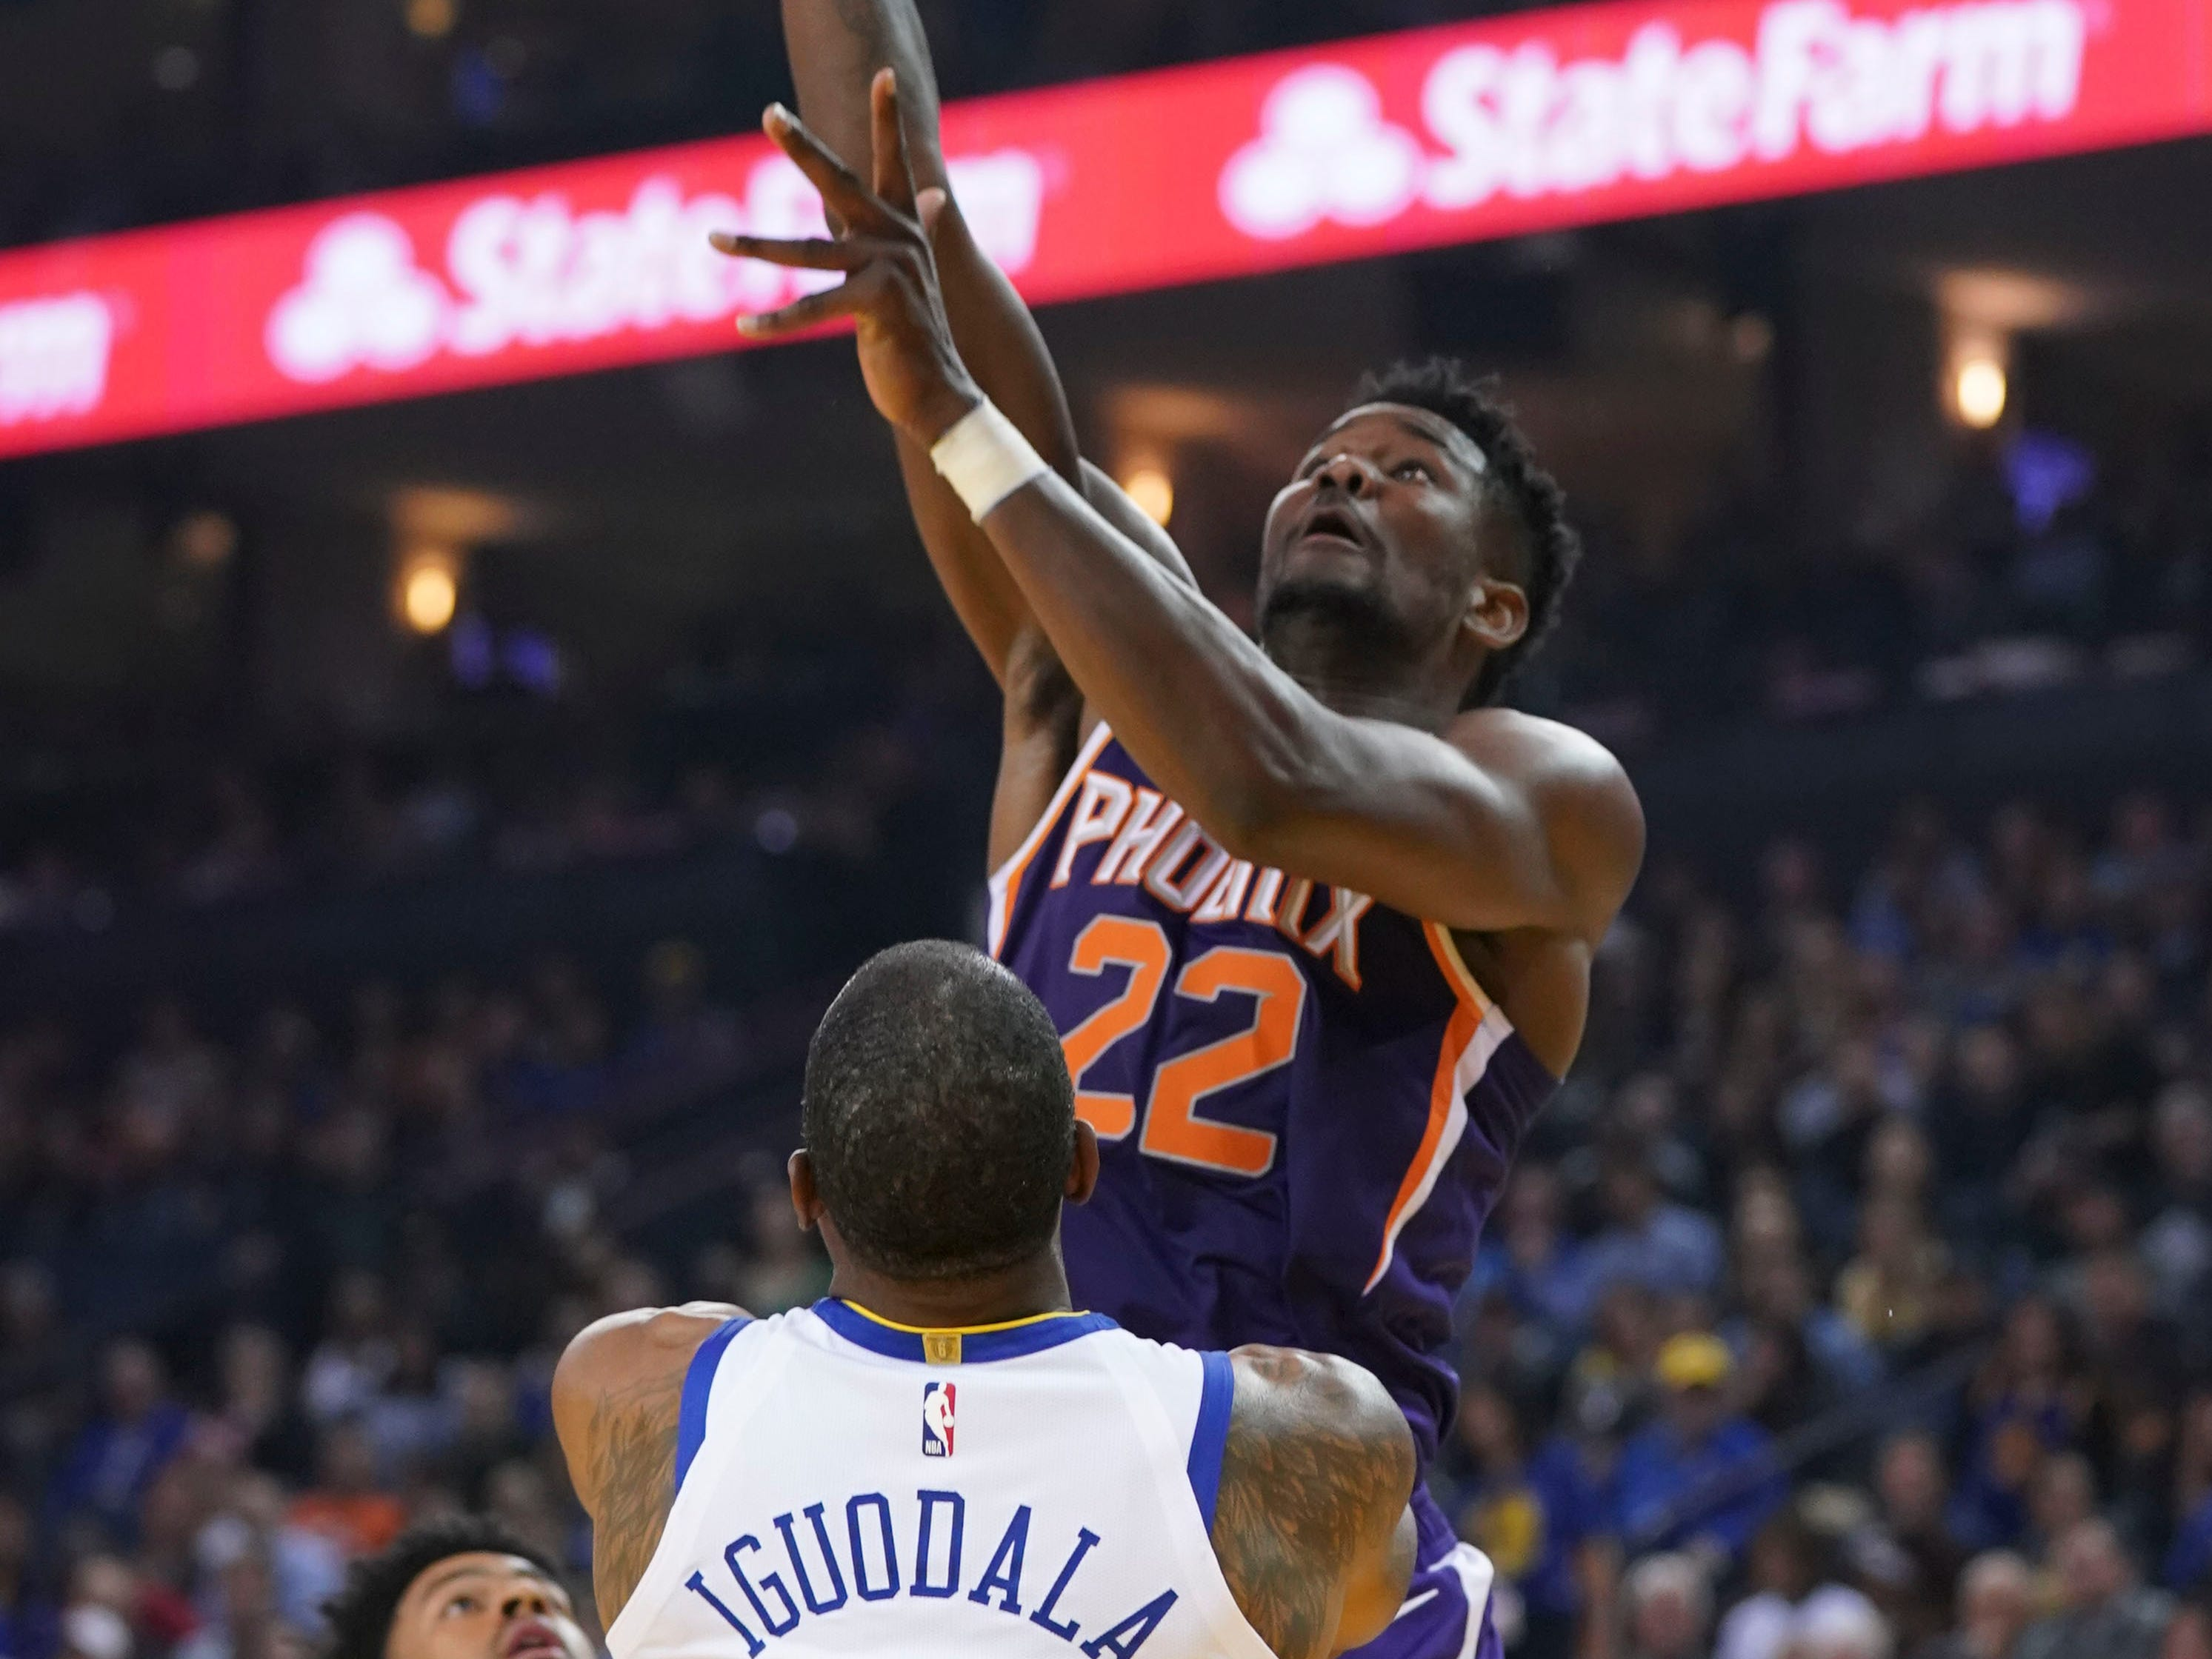 October 22, 2018; Oakland, CA, USA; Phoenix Suns center Deandre Ayton (22) shoots the basketball against Golden State Warriors guard Andre Iguodala (9) during the second quarter at Oracle Arena. Mandatory Credit: Kyle Terada-USA TODAY Sports